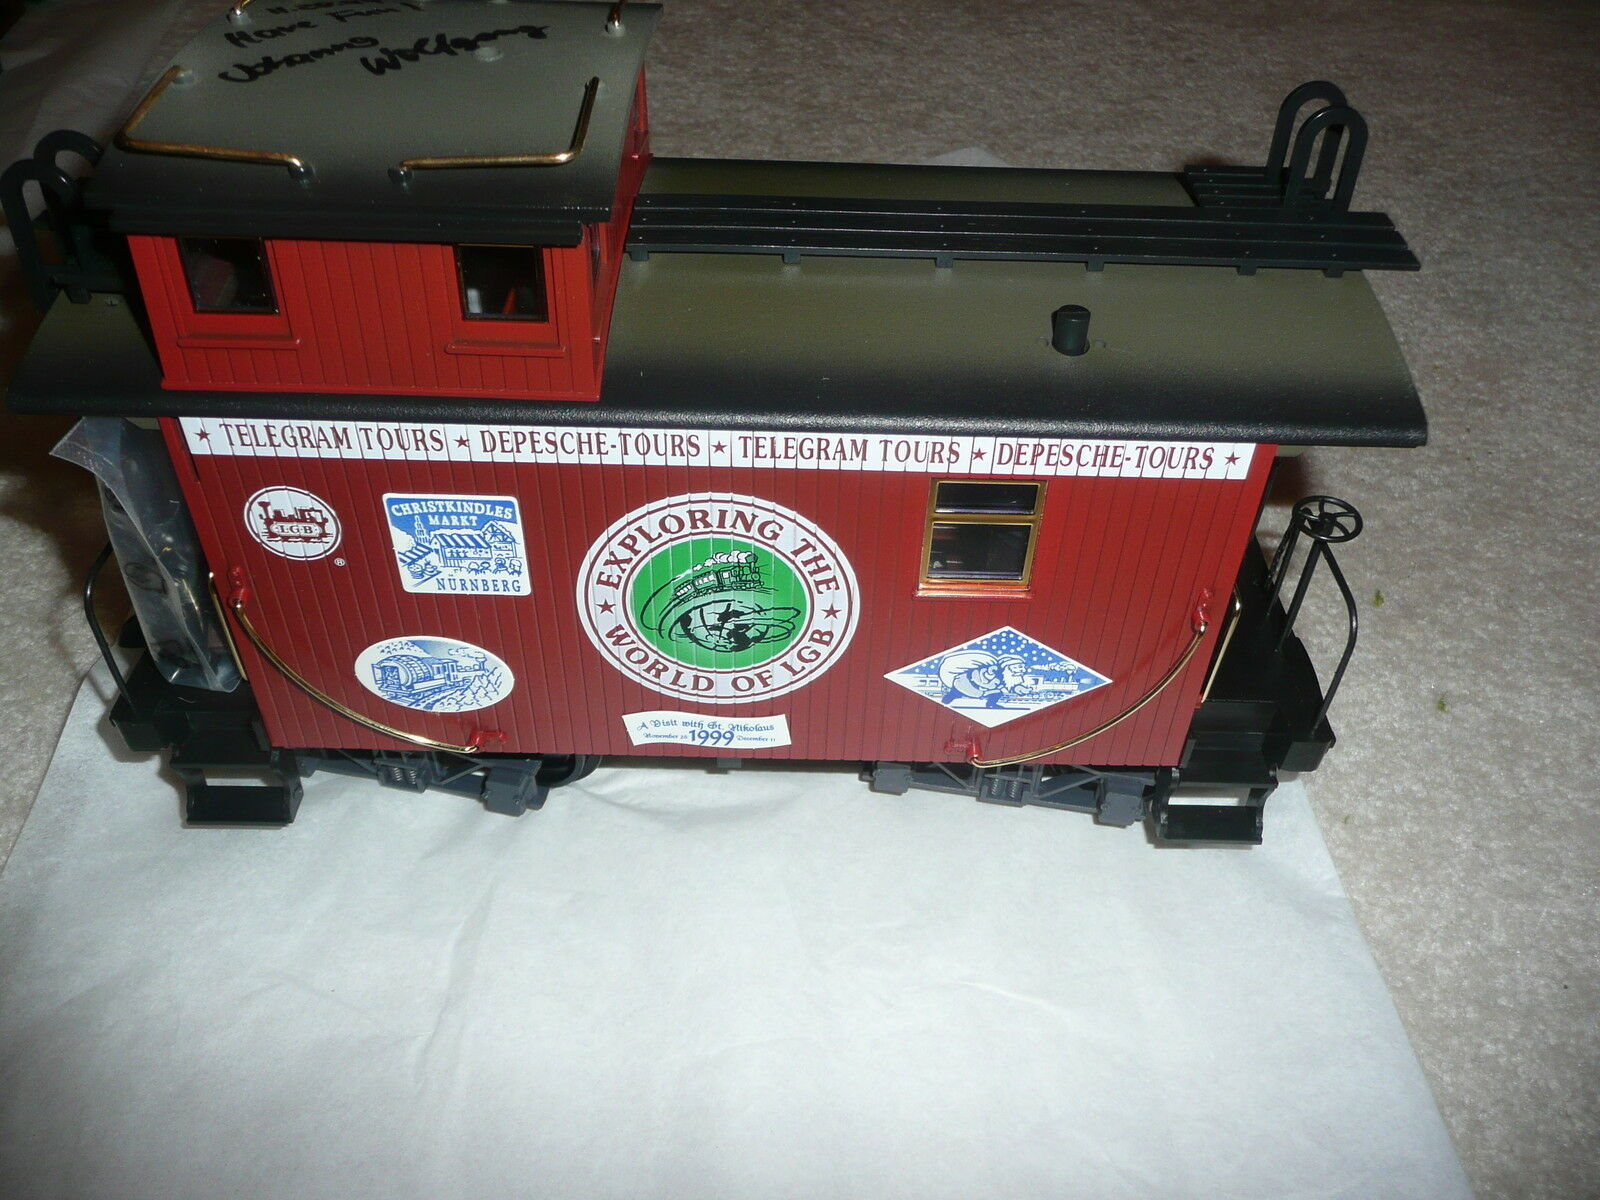 NEW - RARE LGB 1999 Narrow Gauge Caboose -  Signed by LGB Owners – (EA-H-0004)